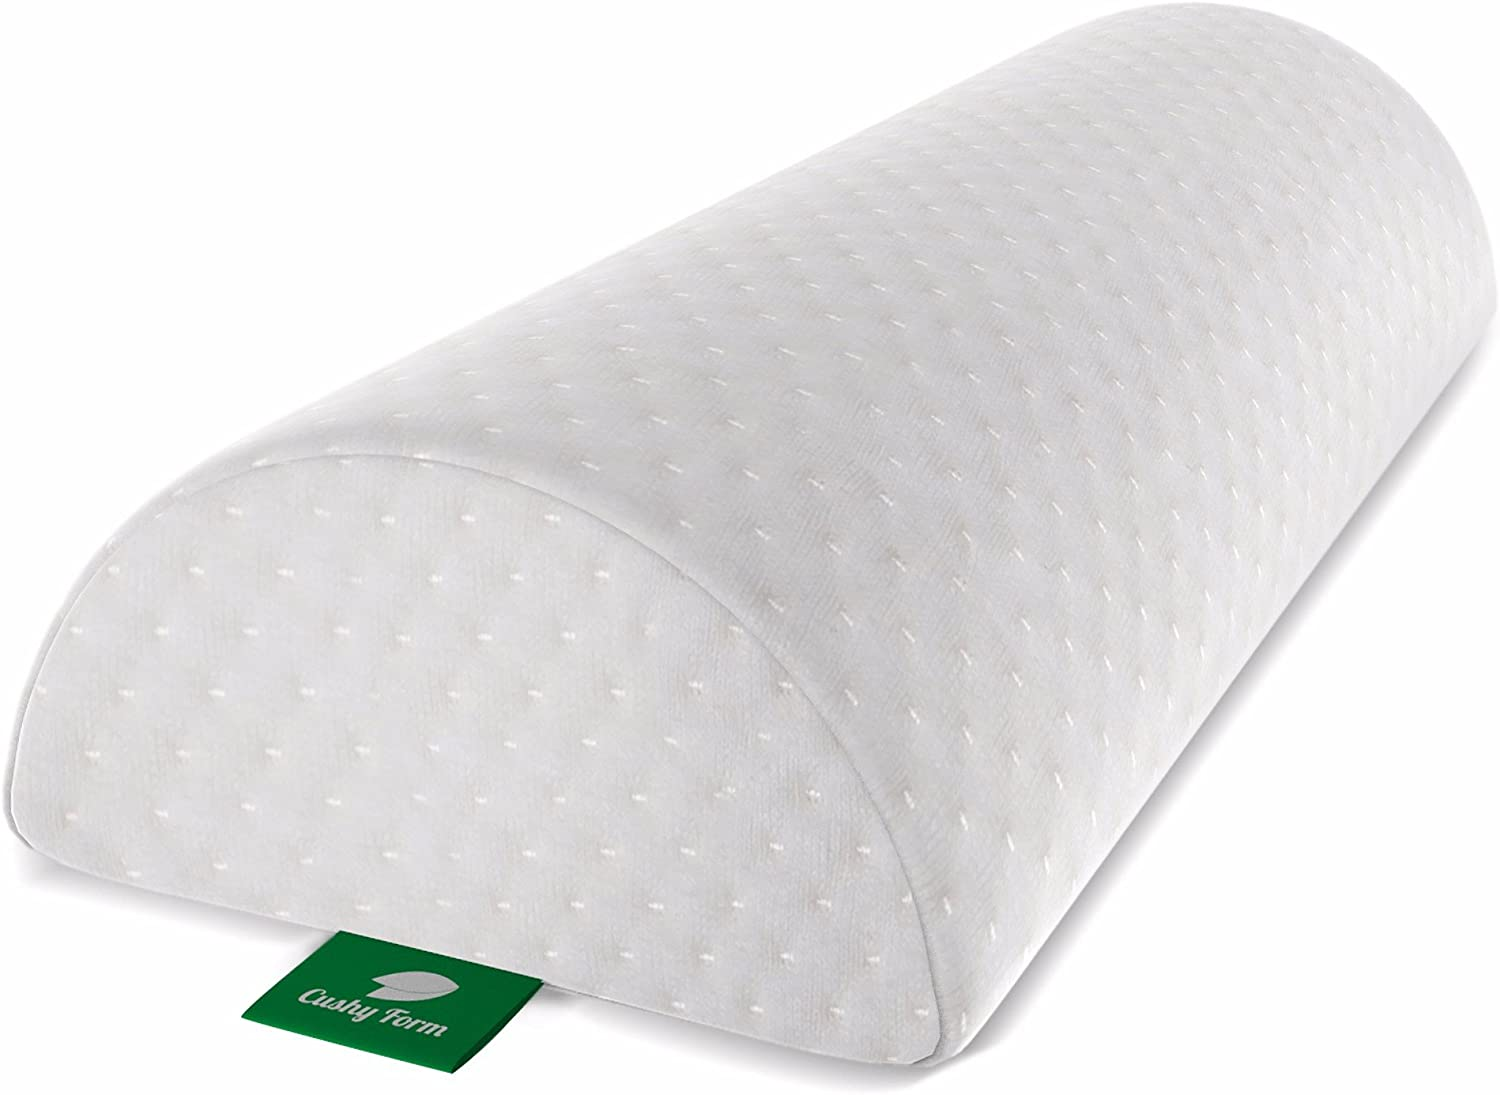 Amazon.com: Knee Pillow for Back Pain   Half Moon Bolster Pillow